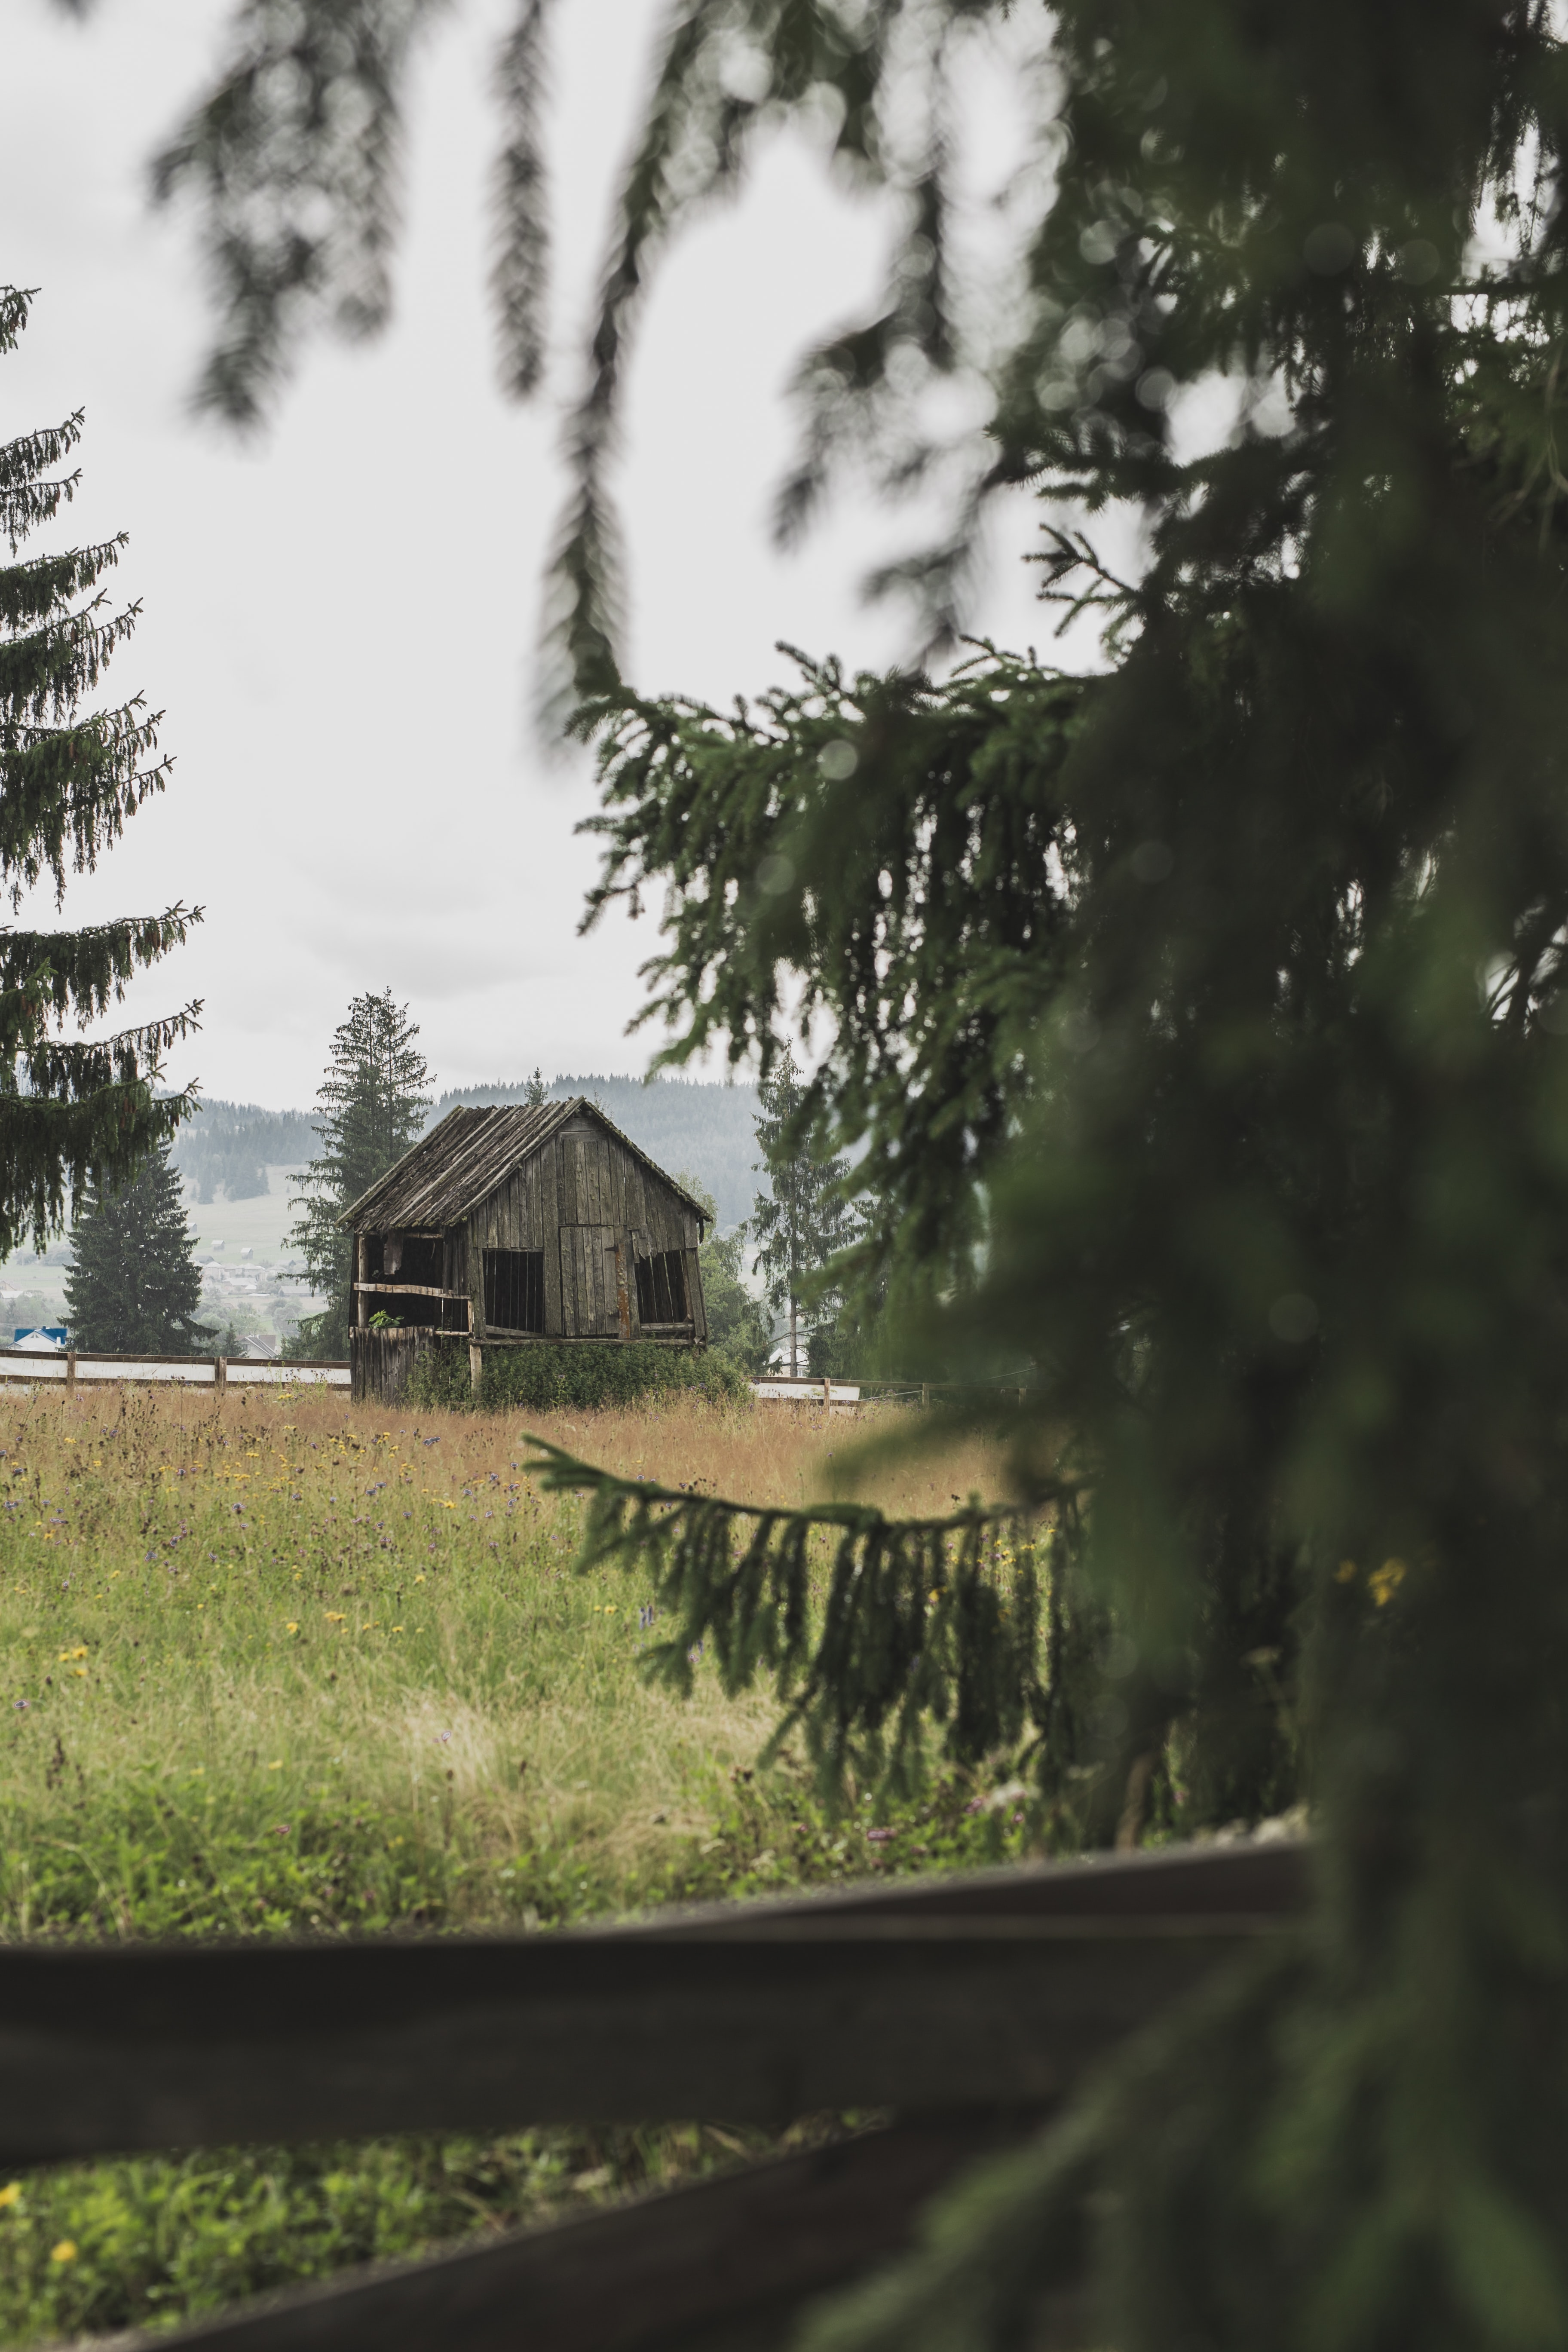 shallow focos photo of brown wooden house surrounded by trees